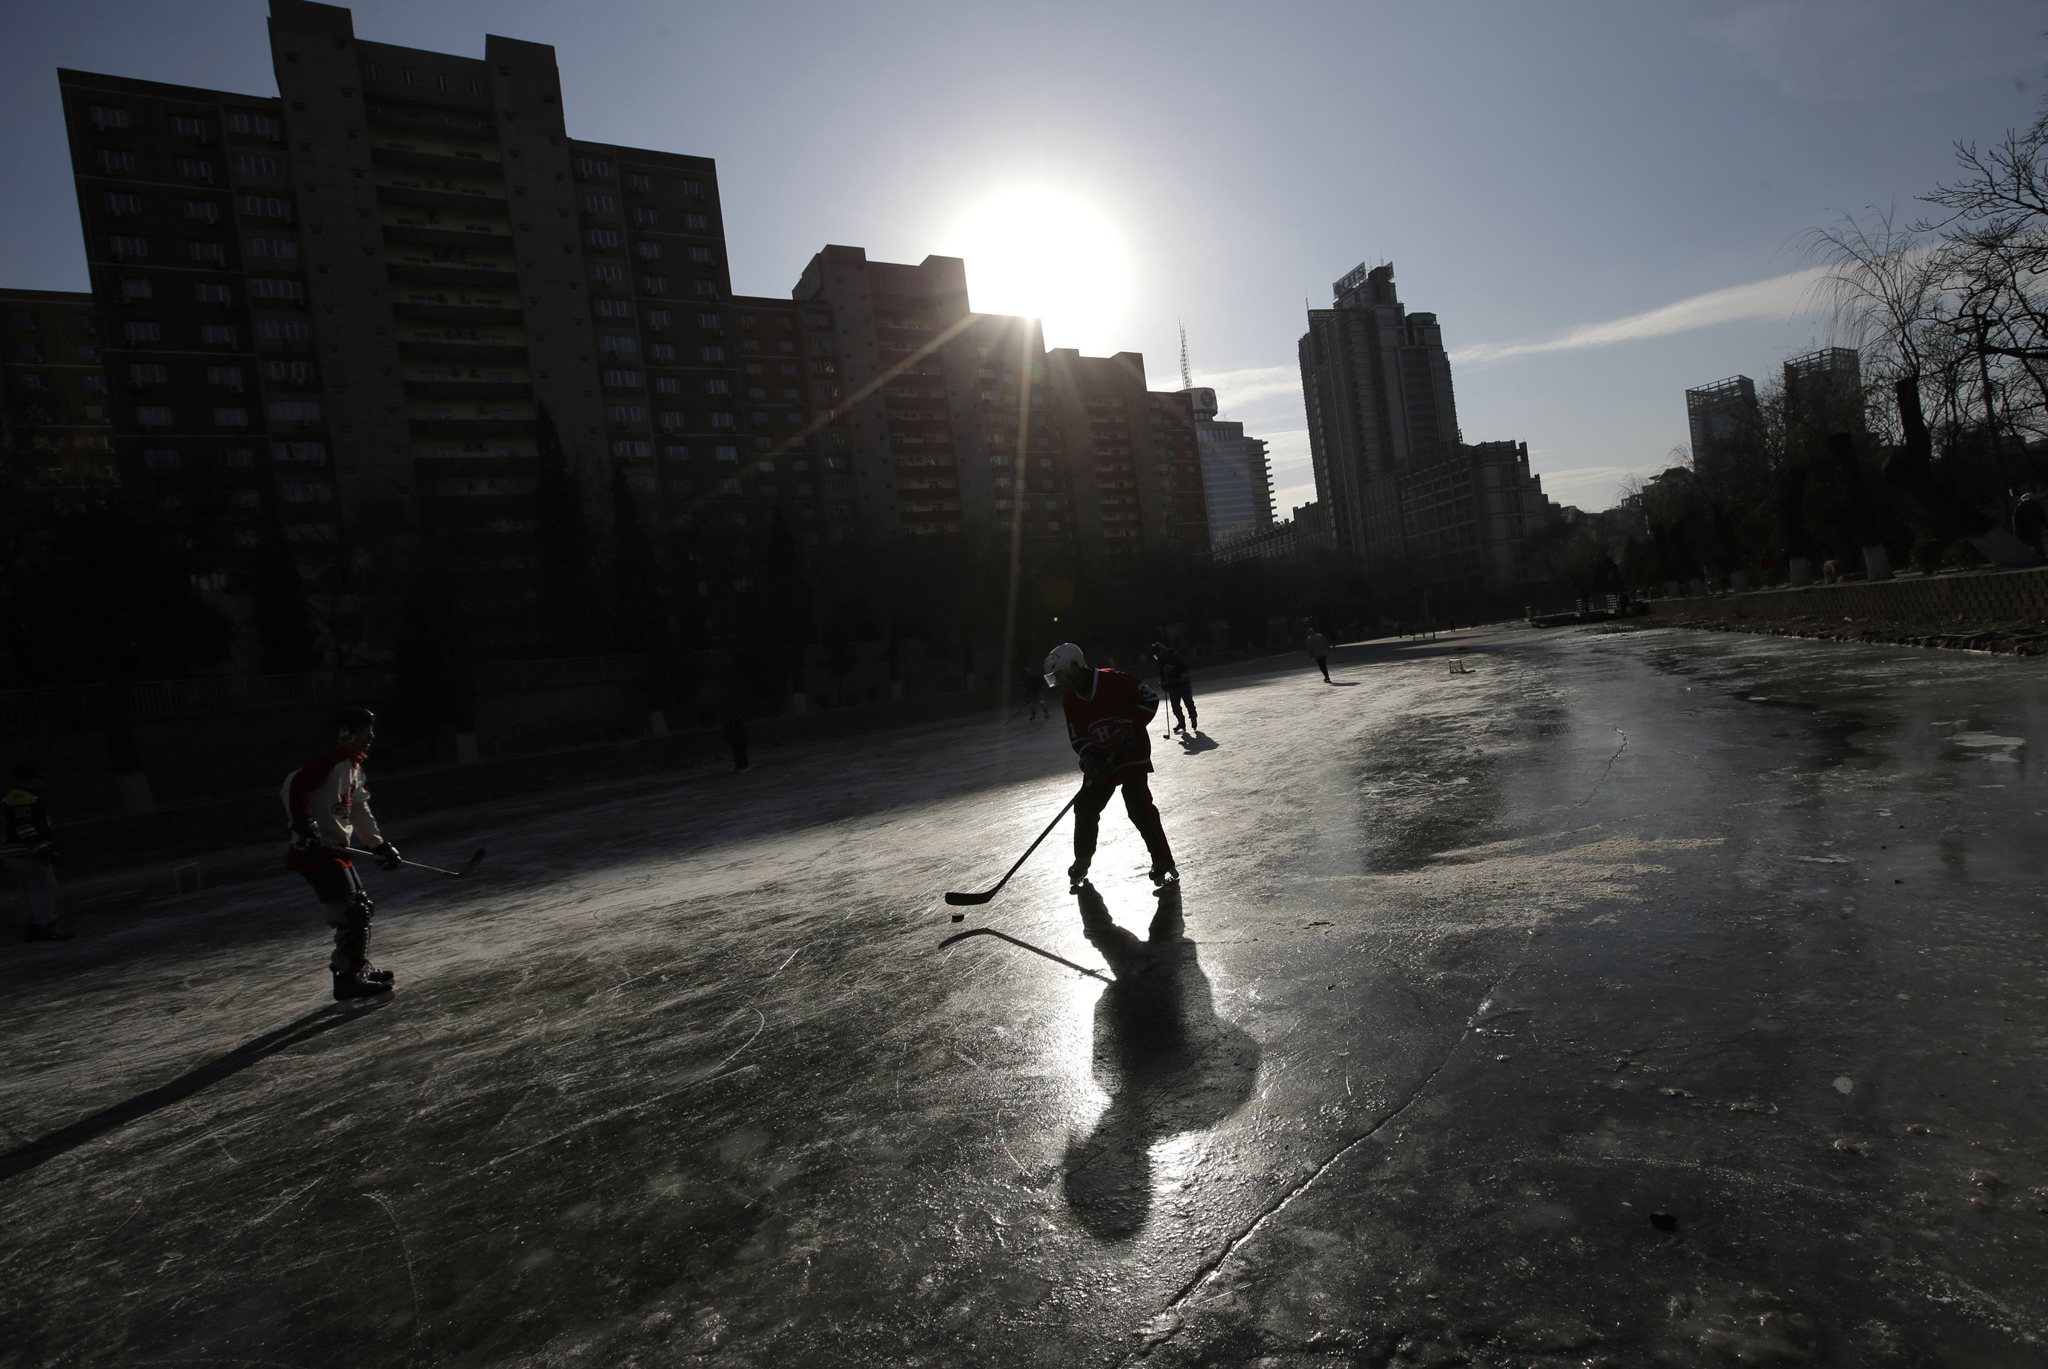 People play ice hockey on the frozen Liangmahe River in Beijing